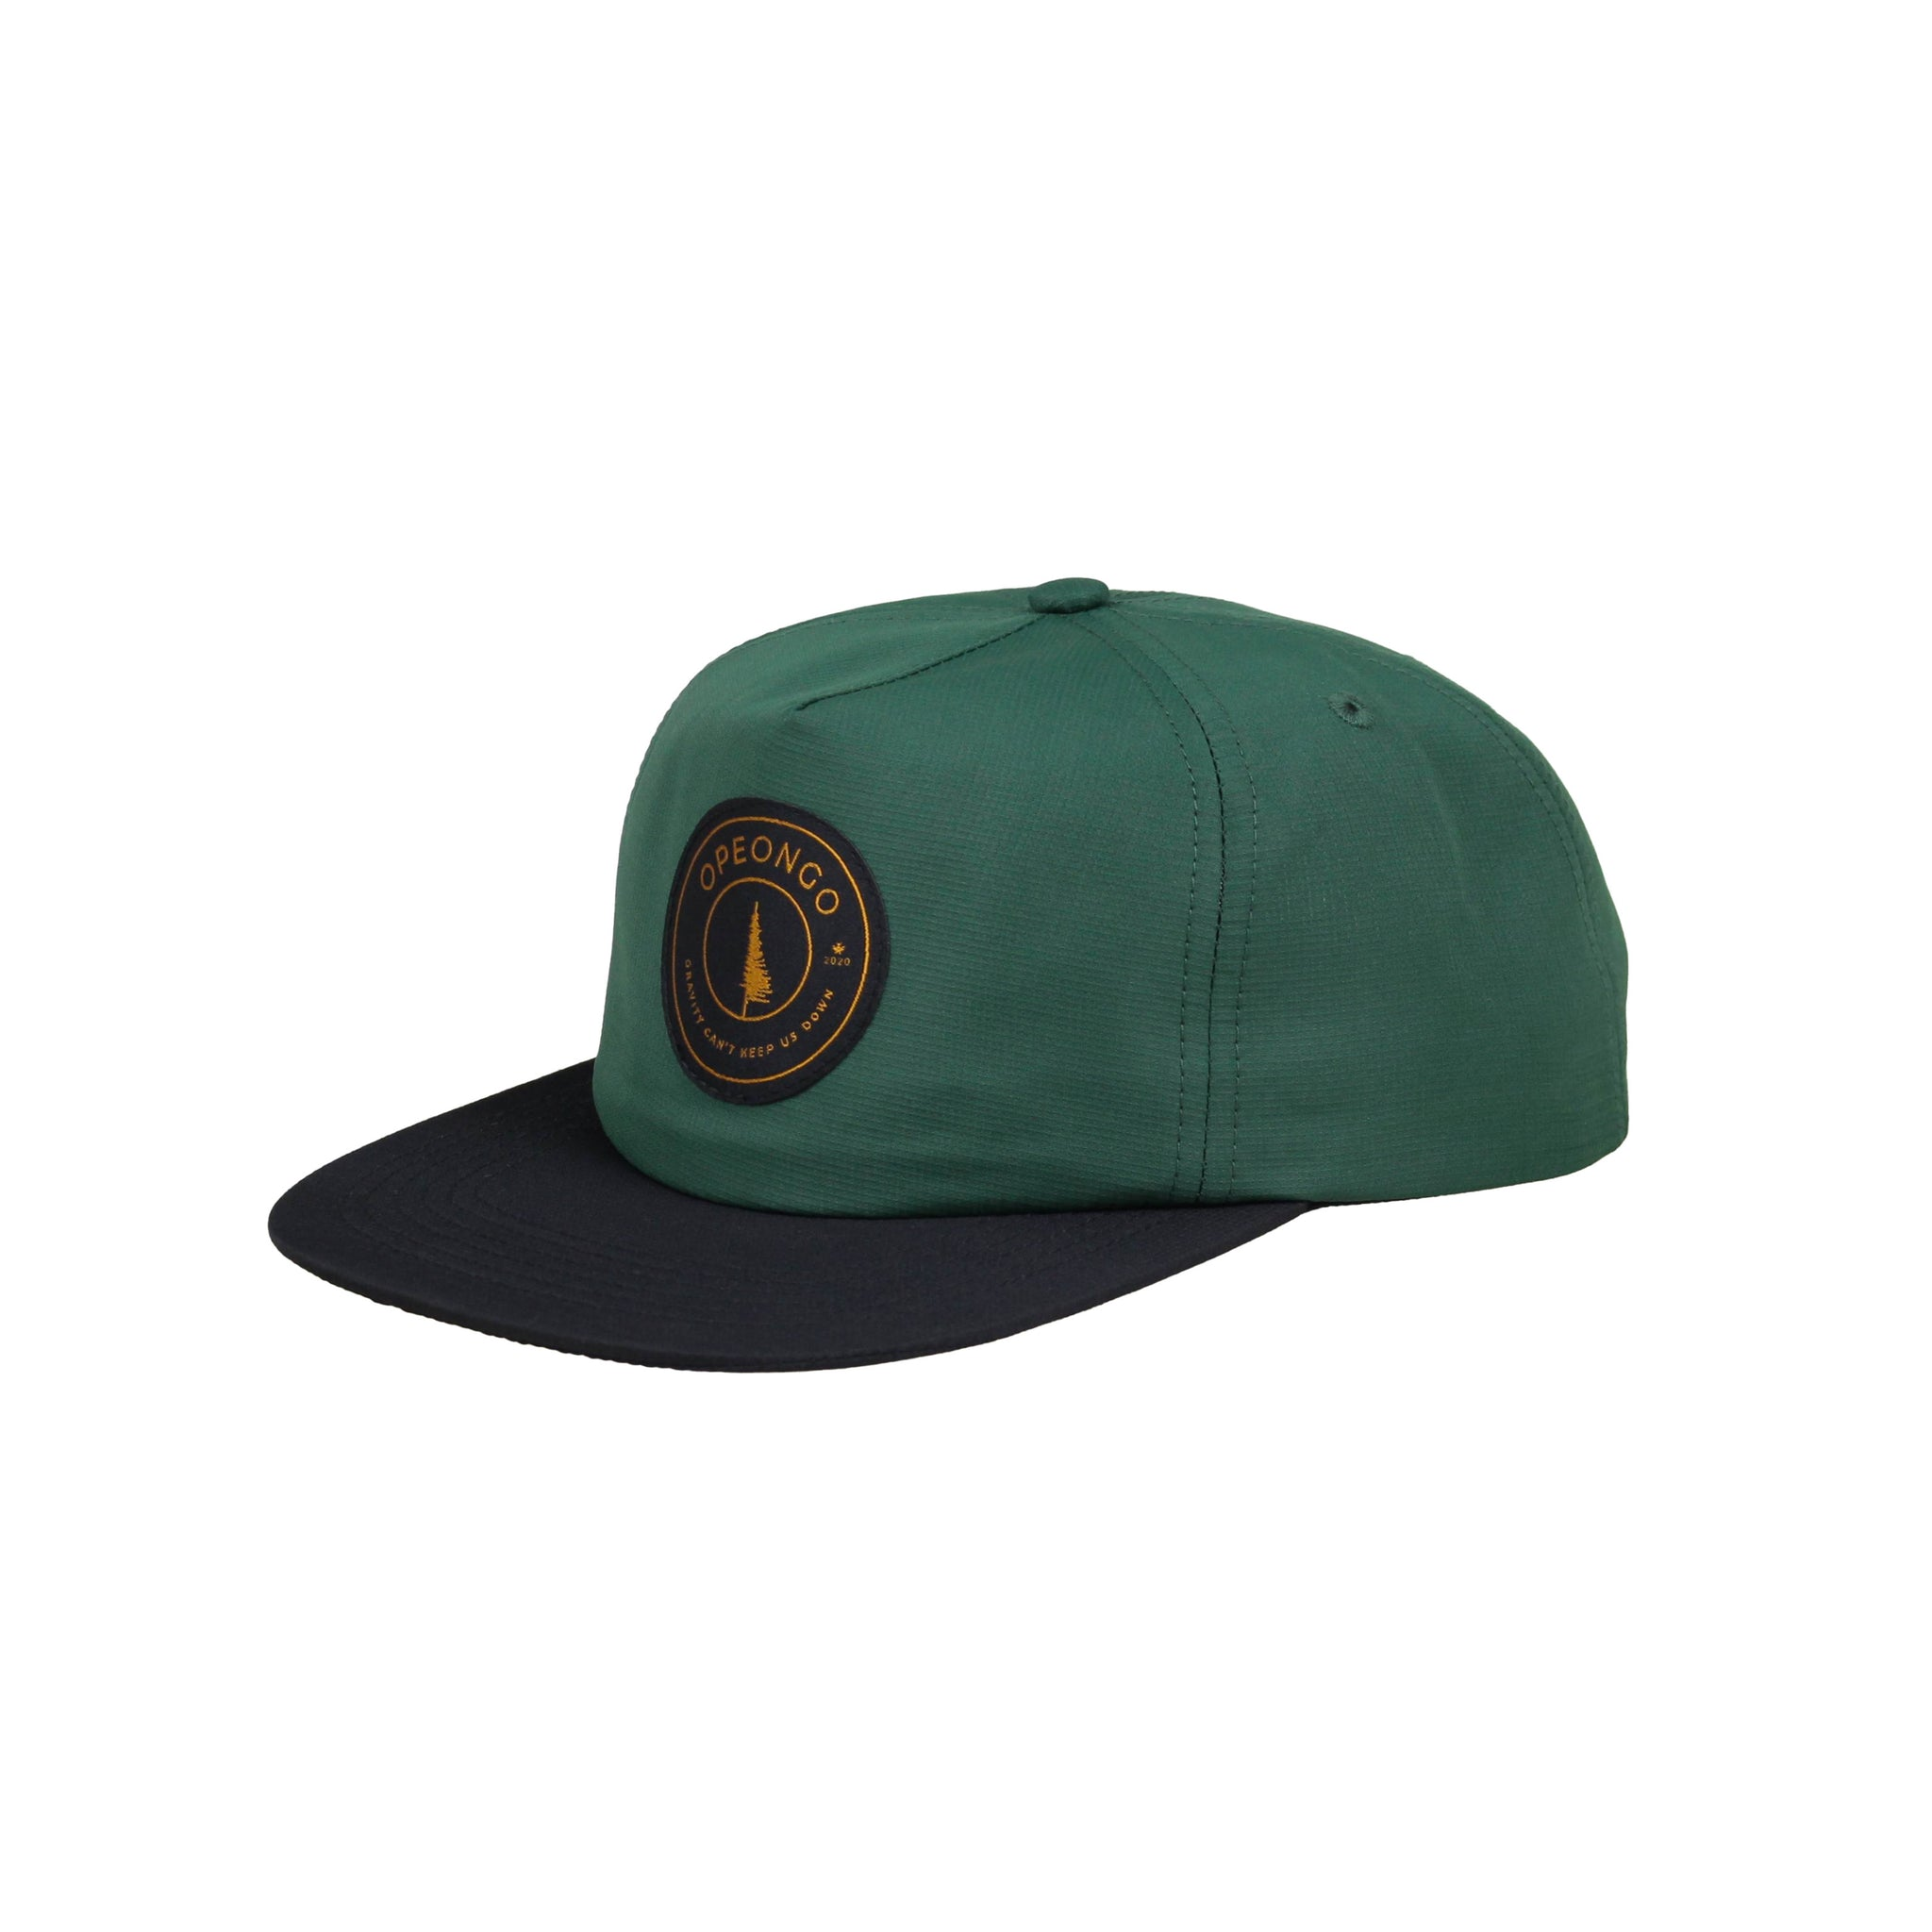 Ripstop Nylon Hat